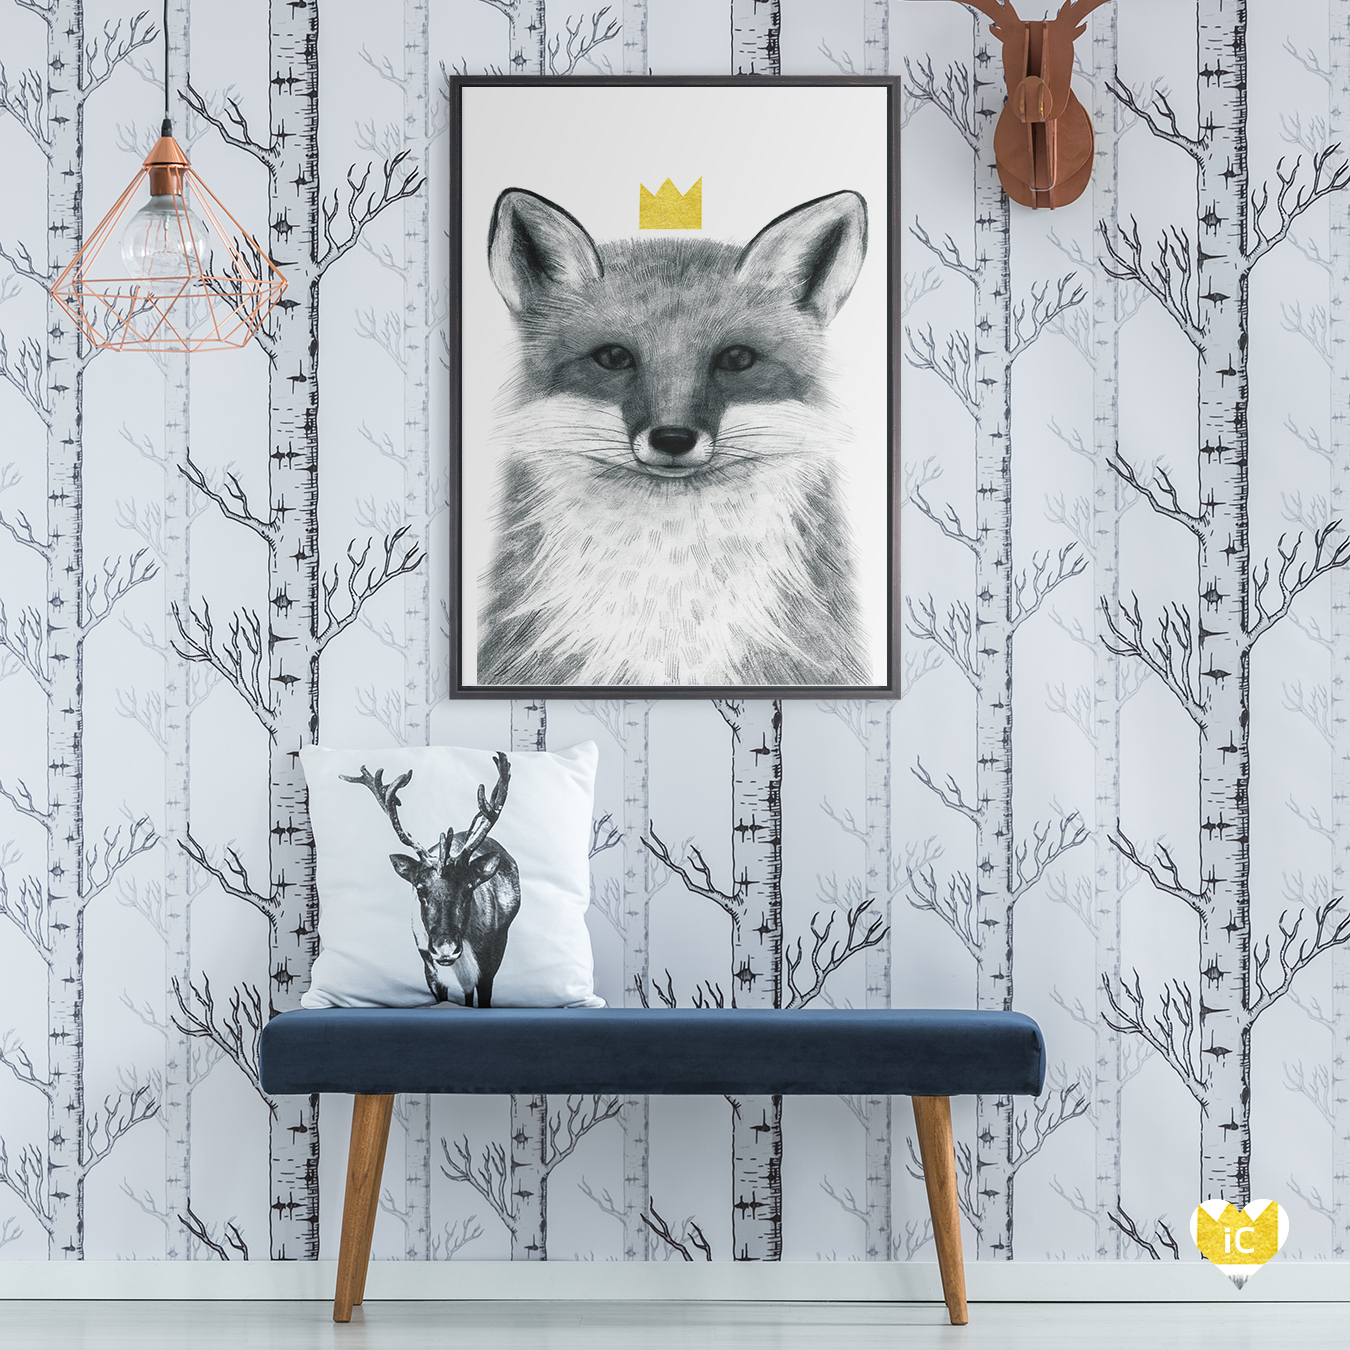 a portrait of a fox in grayscale wearing a yellow crown